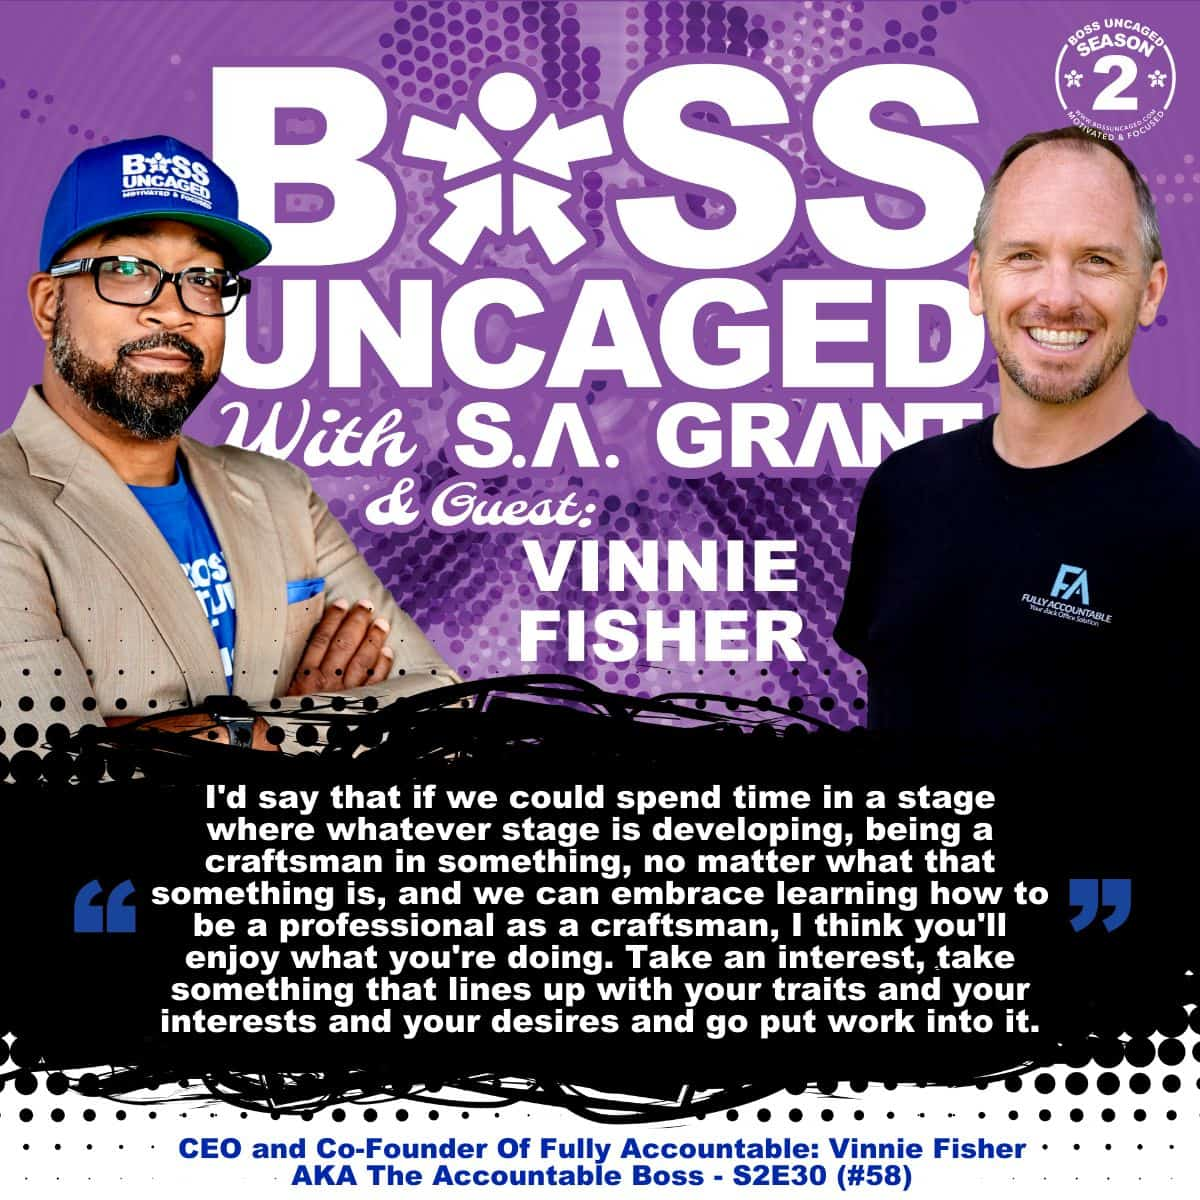 CEO and Co-Founder Of Fully Accountable: Vinnie Fisher AKA The Accountable Boss - S2E30 (#58)